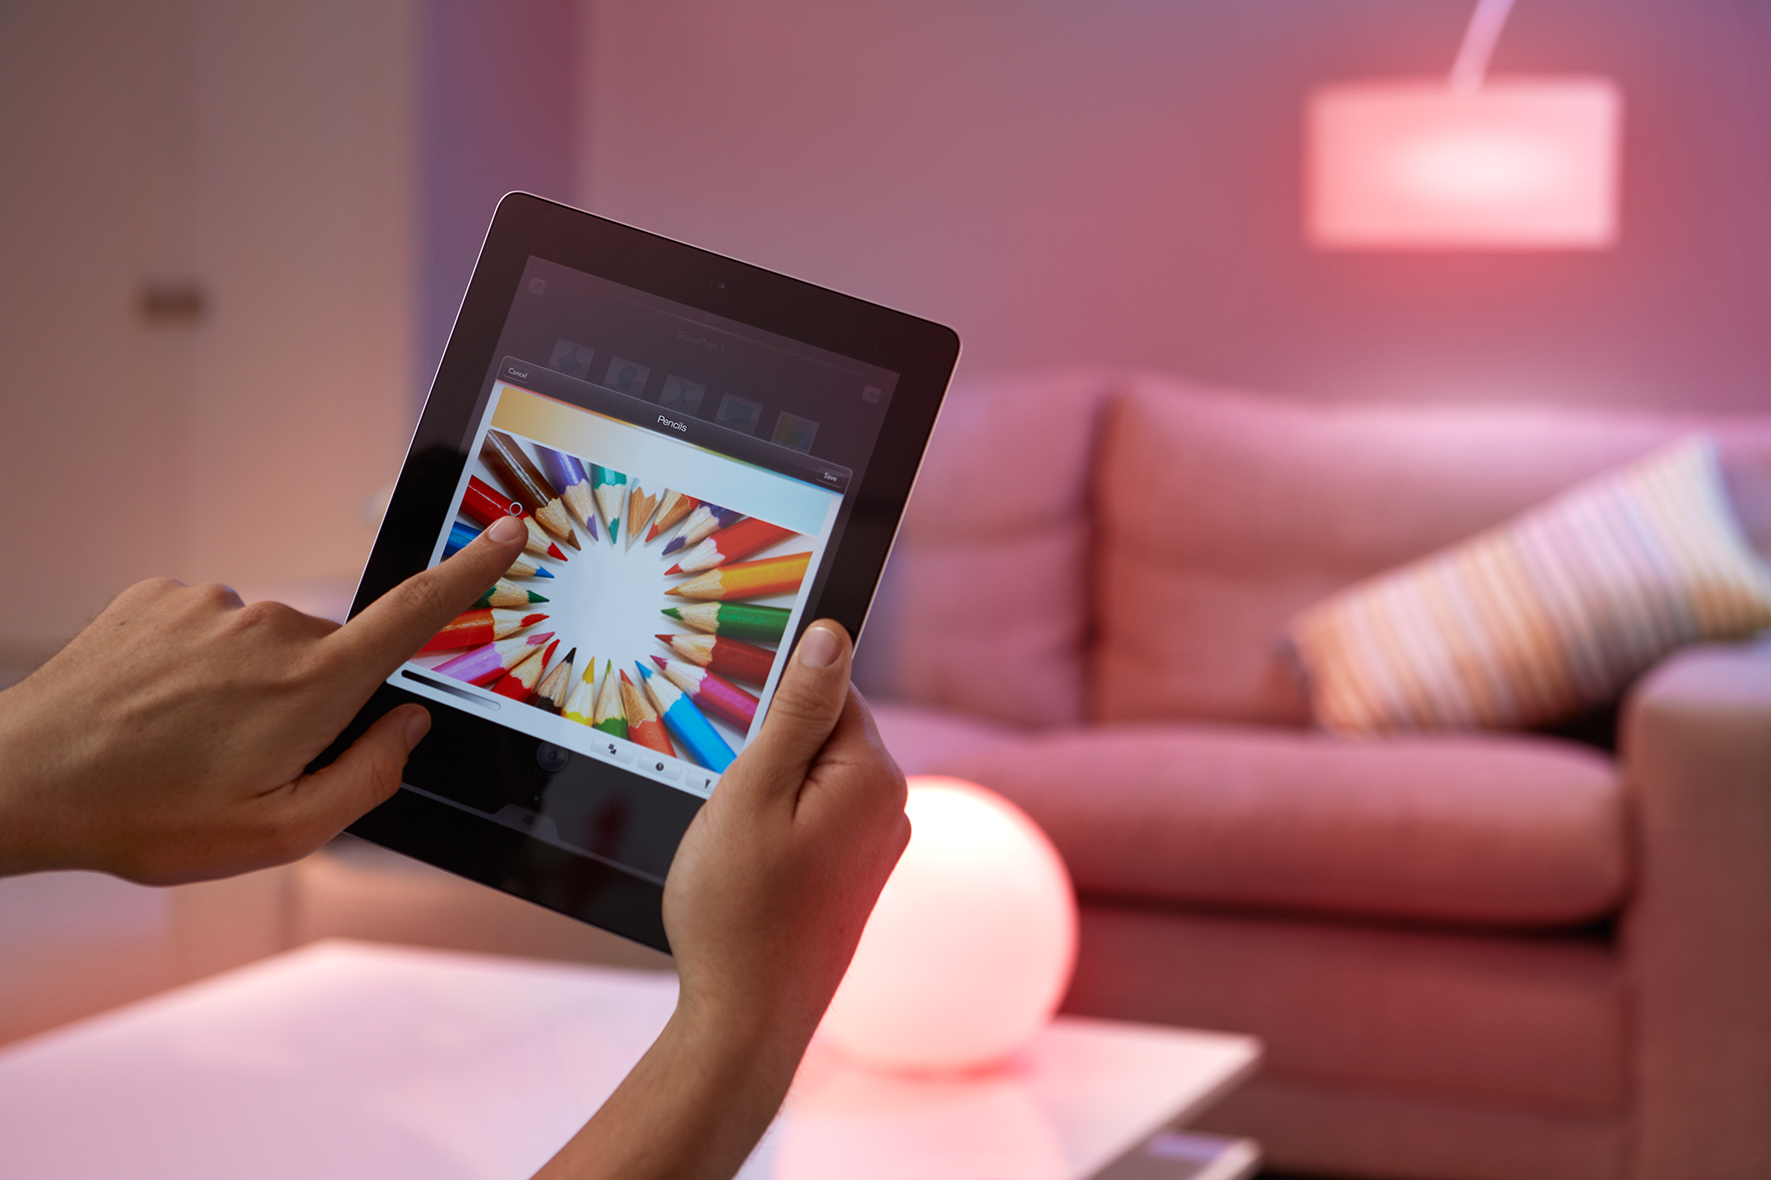 Philips Hue smart control - Image copyright Philips